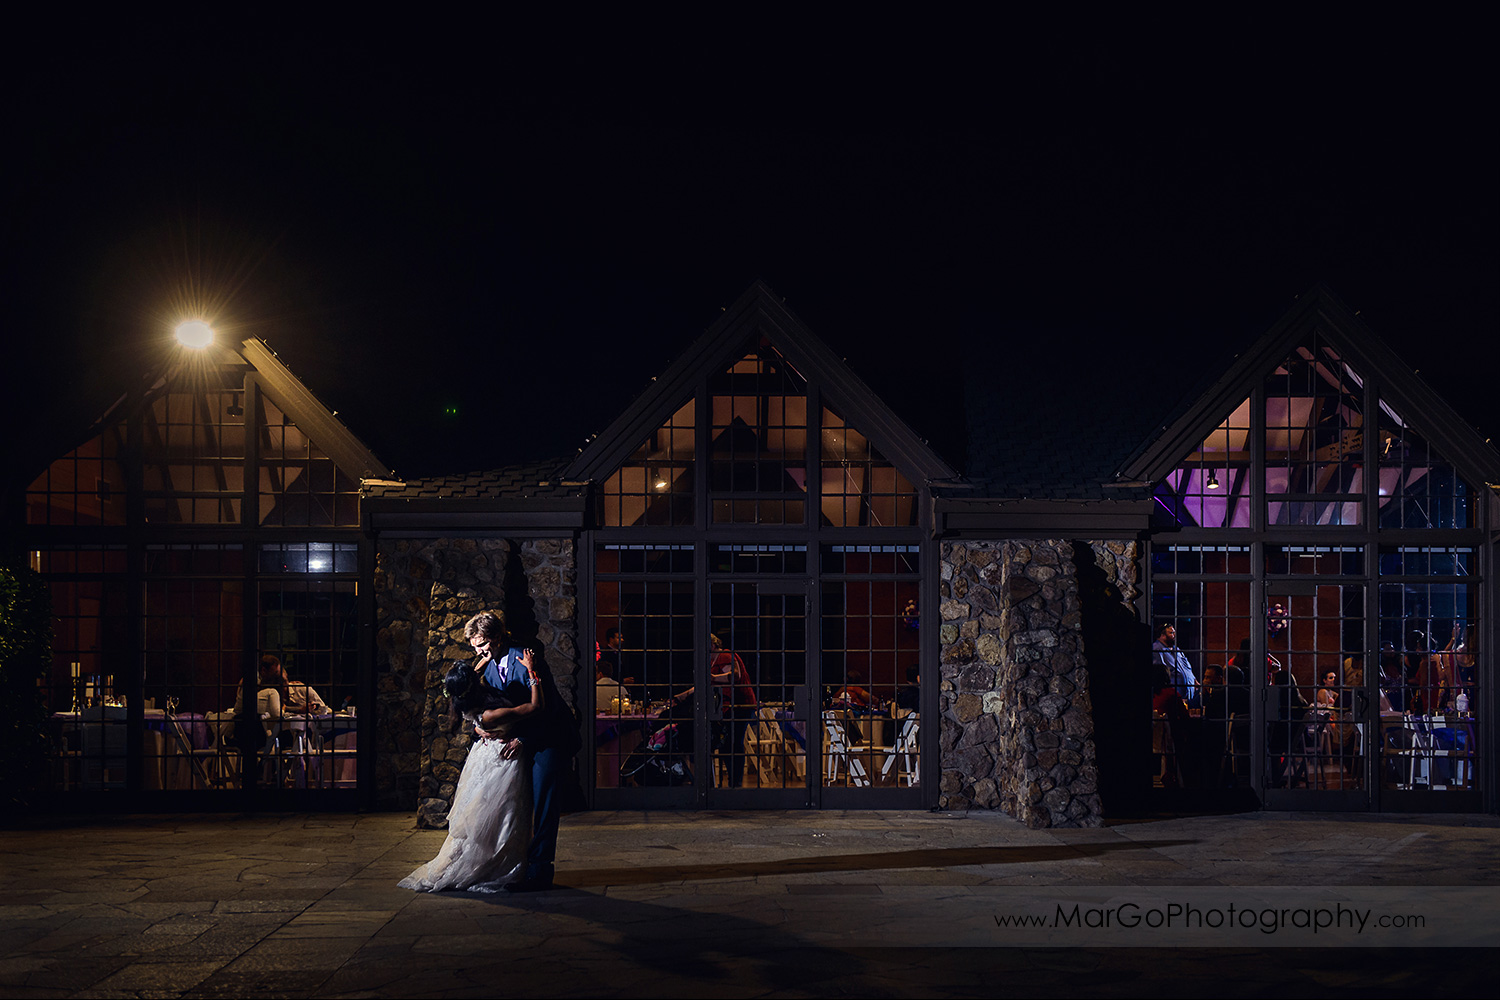 wnight shot of bride and groom at Brazilian Room - Tilden Regional Park, Berkeley